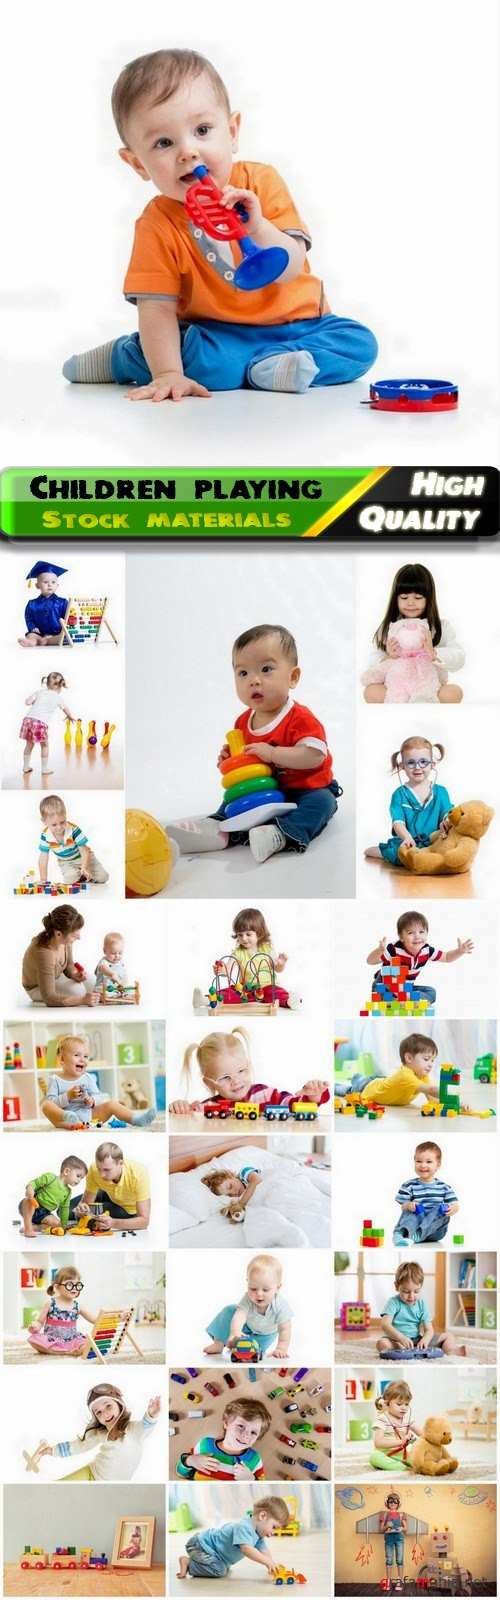 Happy children playing with toys - 25 HQ Jpg